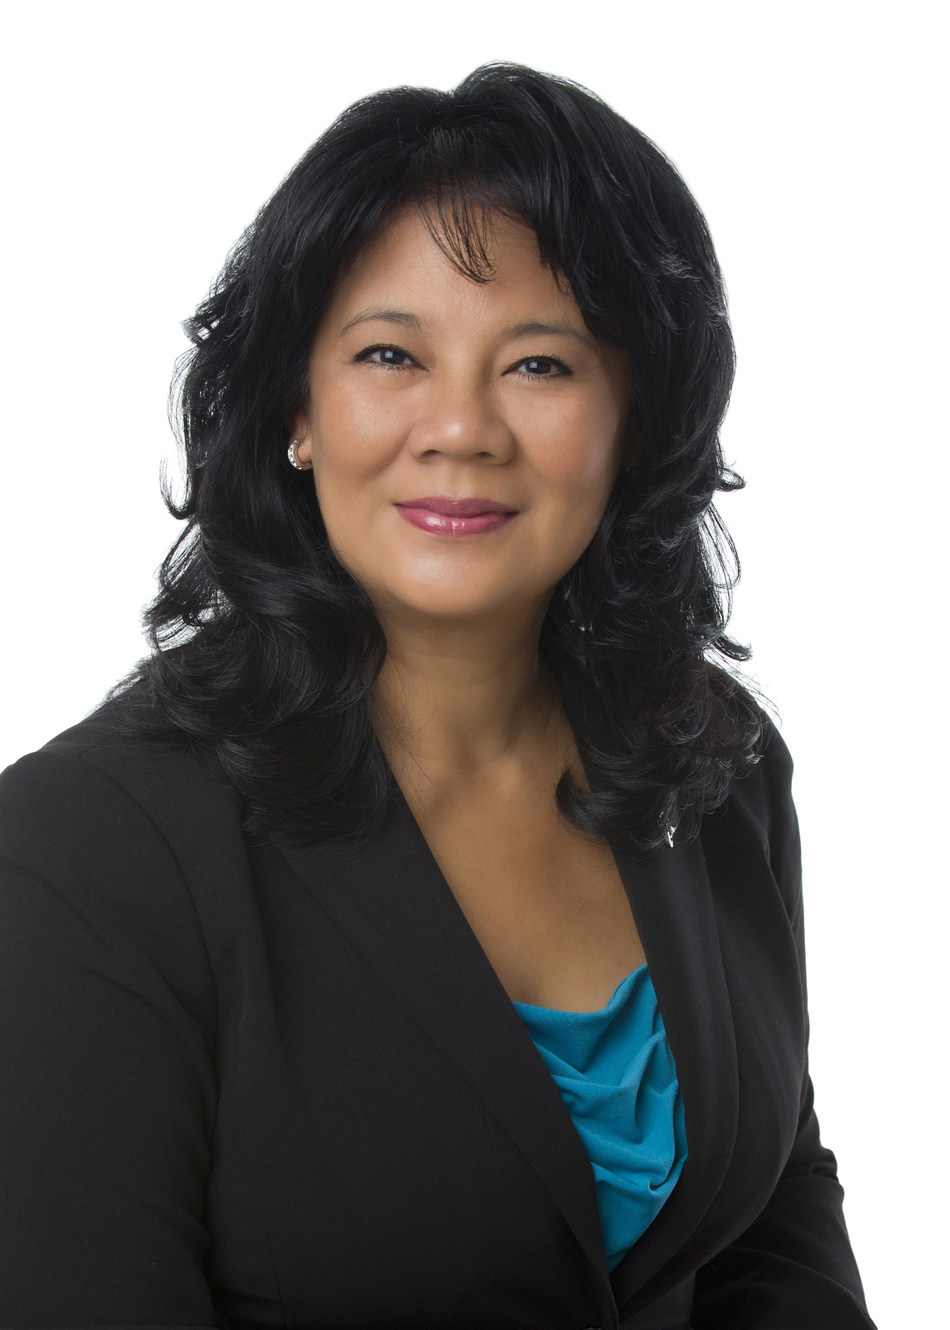 Boeing names Jenette Ramos to Supply Chain & Operations leadership role.